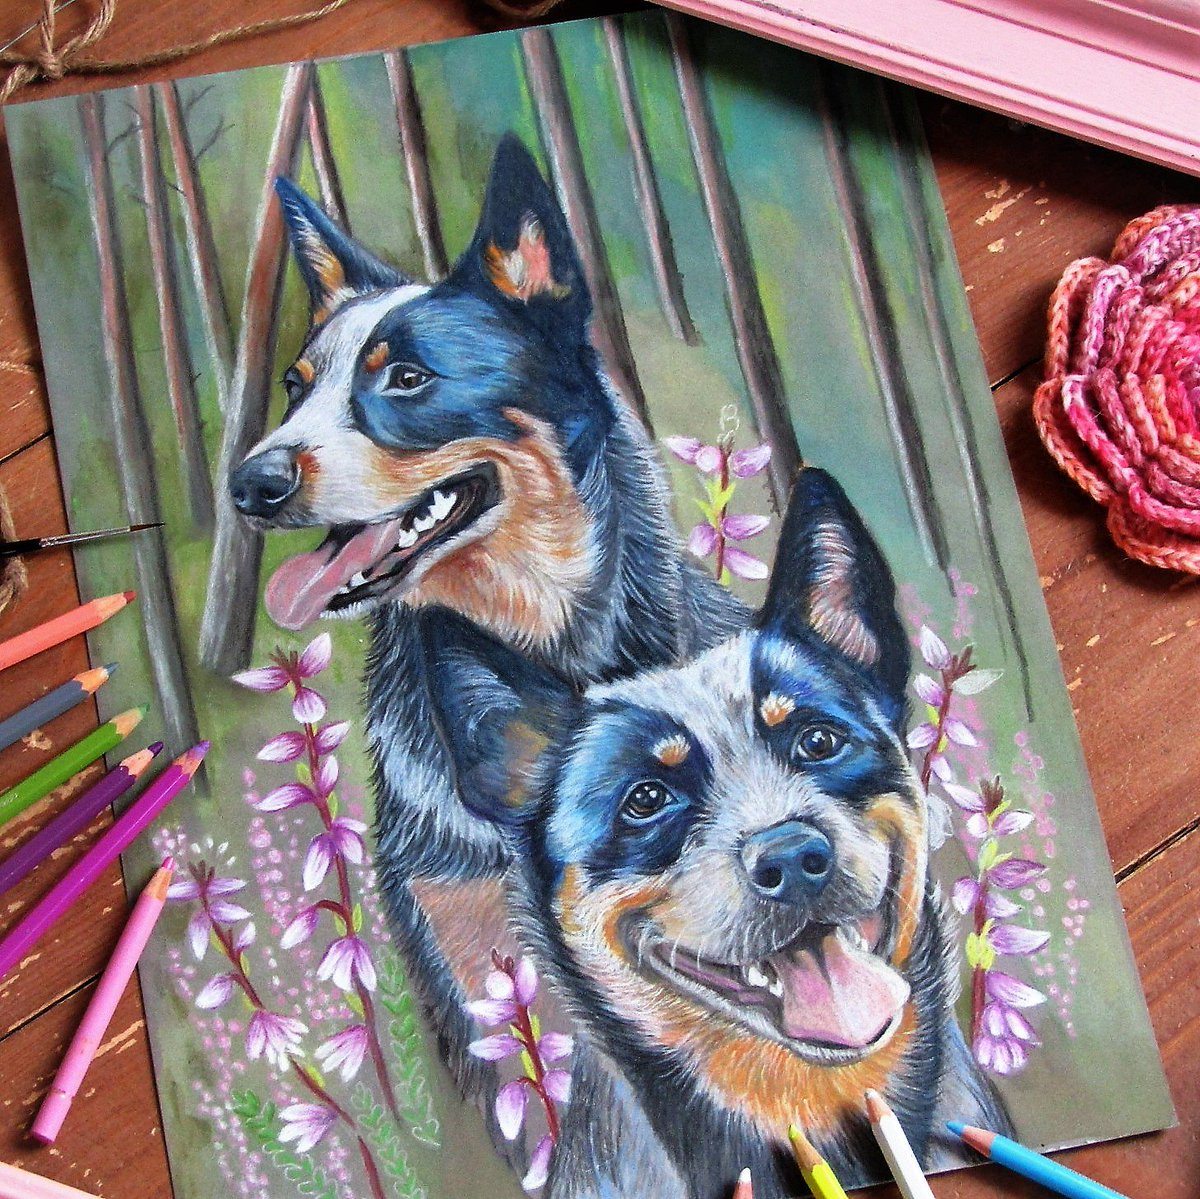 Just a couple hours work before this commission is finished. #Artlovers #ArtistOnTwitter #fineart #neverstopcreating #arttherapy #artproject #artisteverywhere #dogs #catlledog #blueheeler #commission<br>http://pic.twitter.com/QhiUSIEYy0